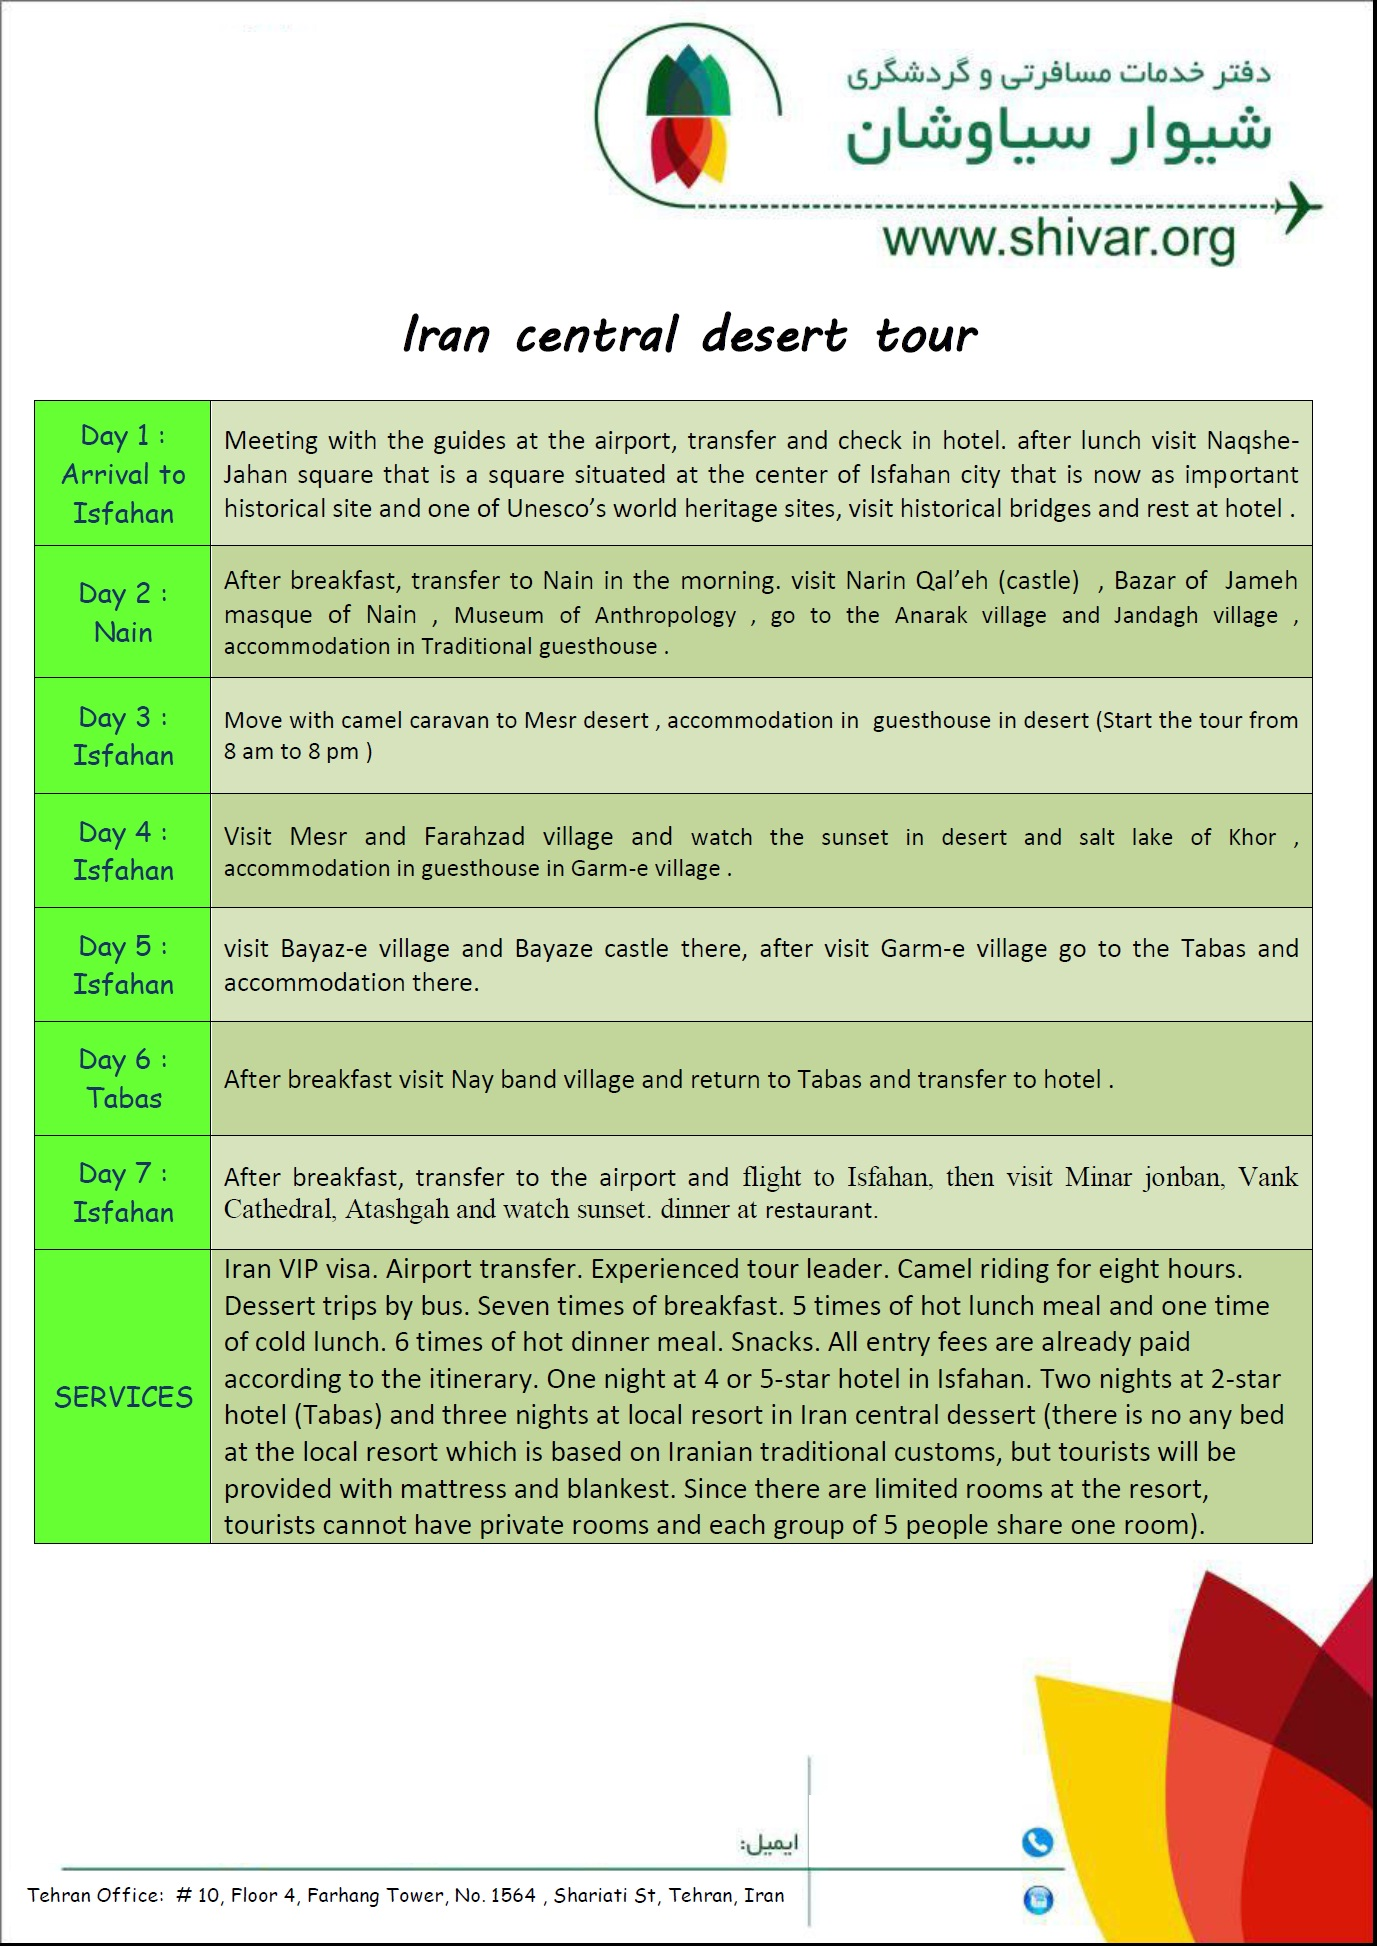 Iran Central Desert Tour